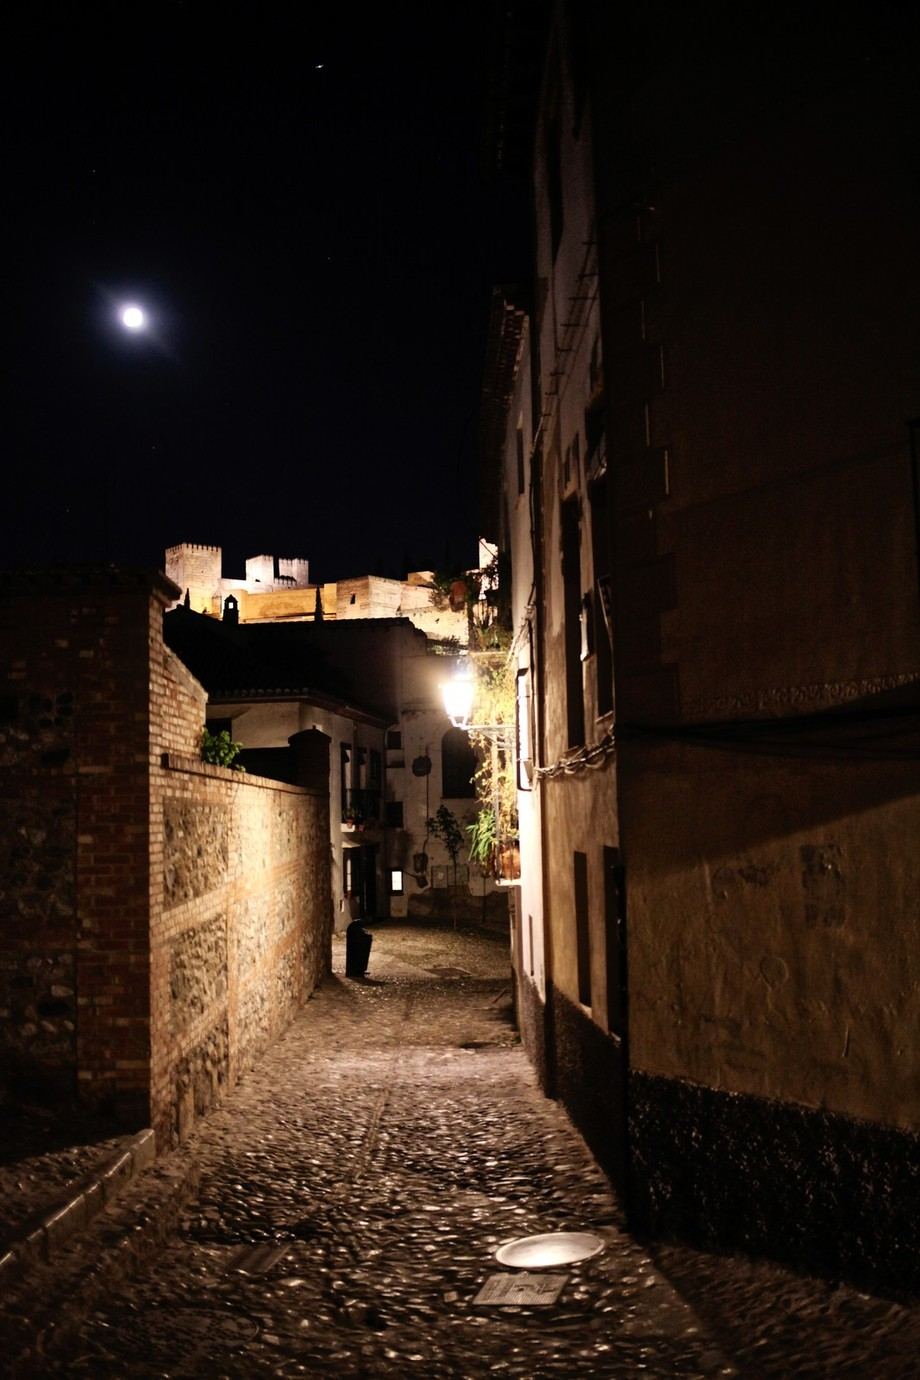 View of the Alhambra by night.Picture taken from an old street in San Nicolas hill, Granada, Spain